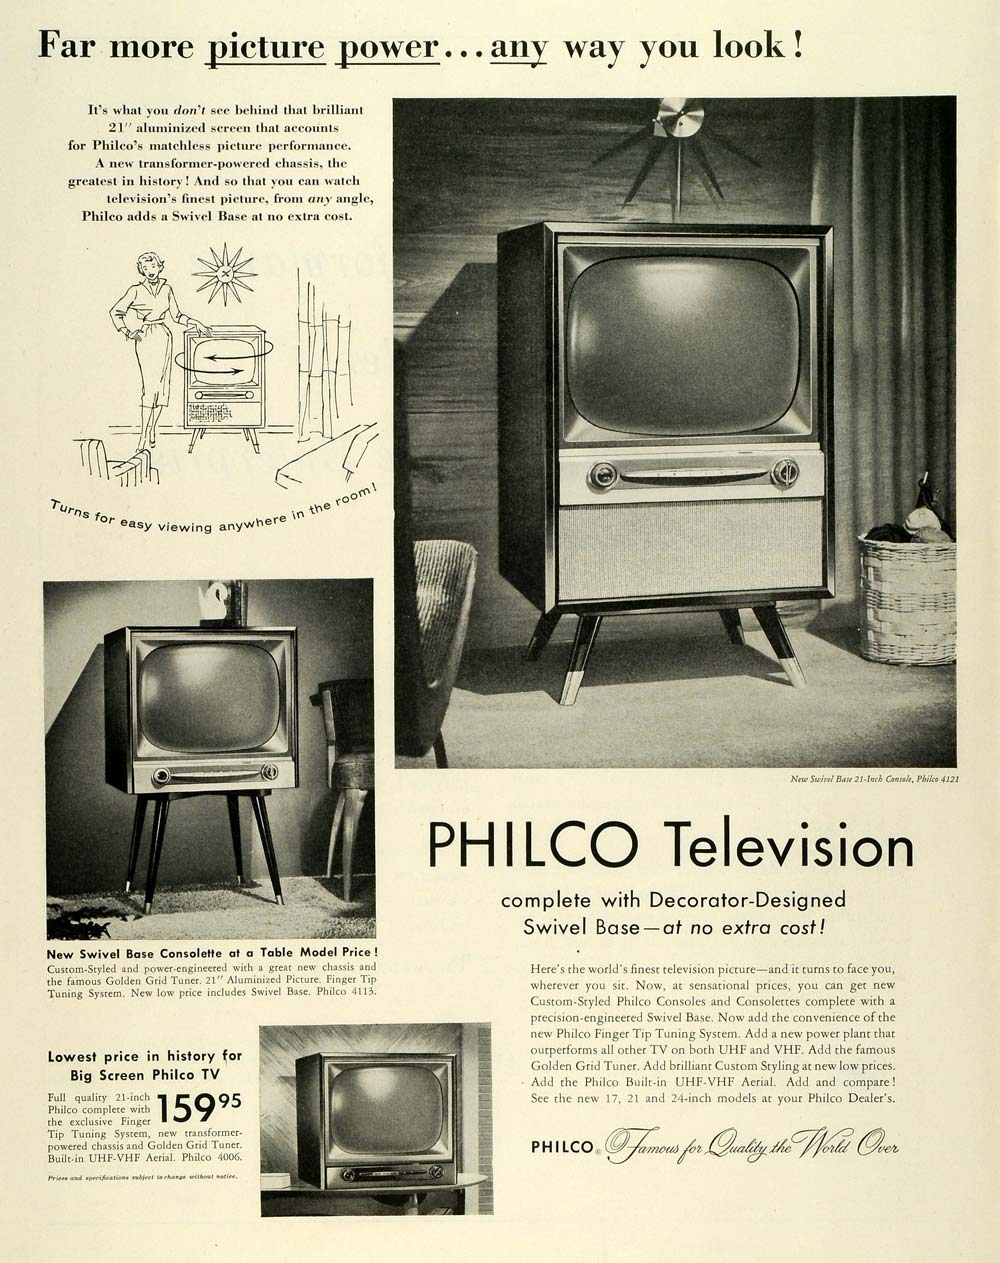 1955 Ad Philco Television Swivel Base Consolette Table Model Antique Applianc -> Model Table Tele